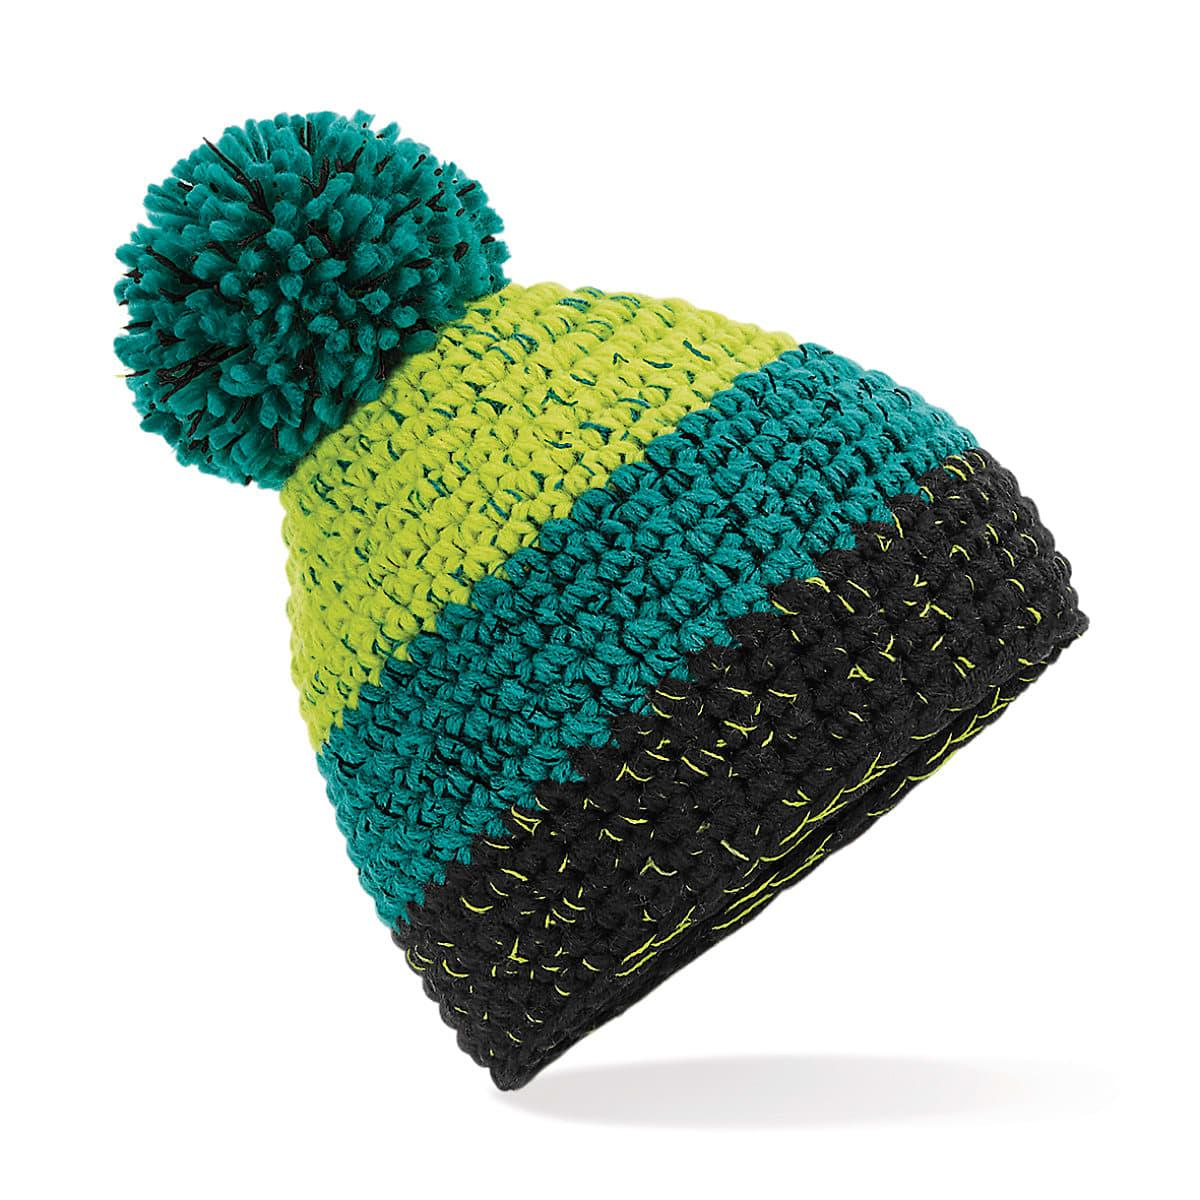 Beechfield Freestyle Beanie Hat in Citron / Emerald / Black (Product Code: B436)